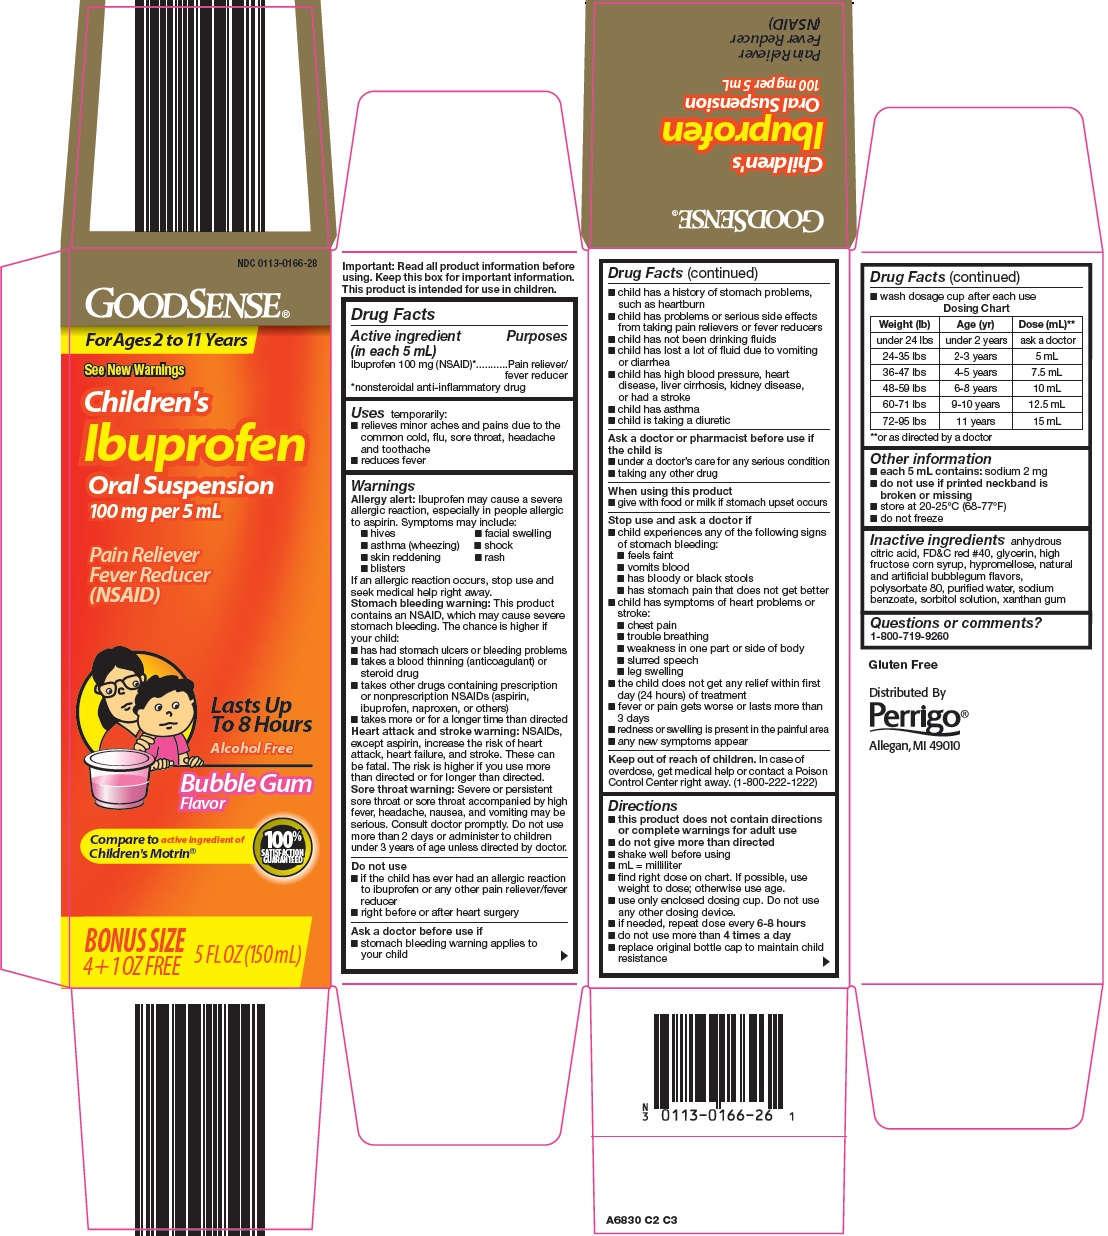 childrens ibuprofen image